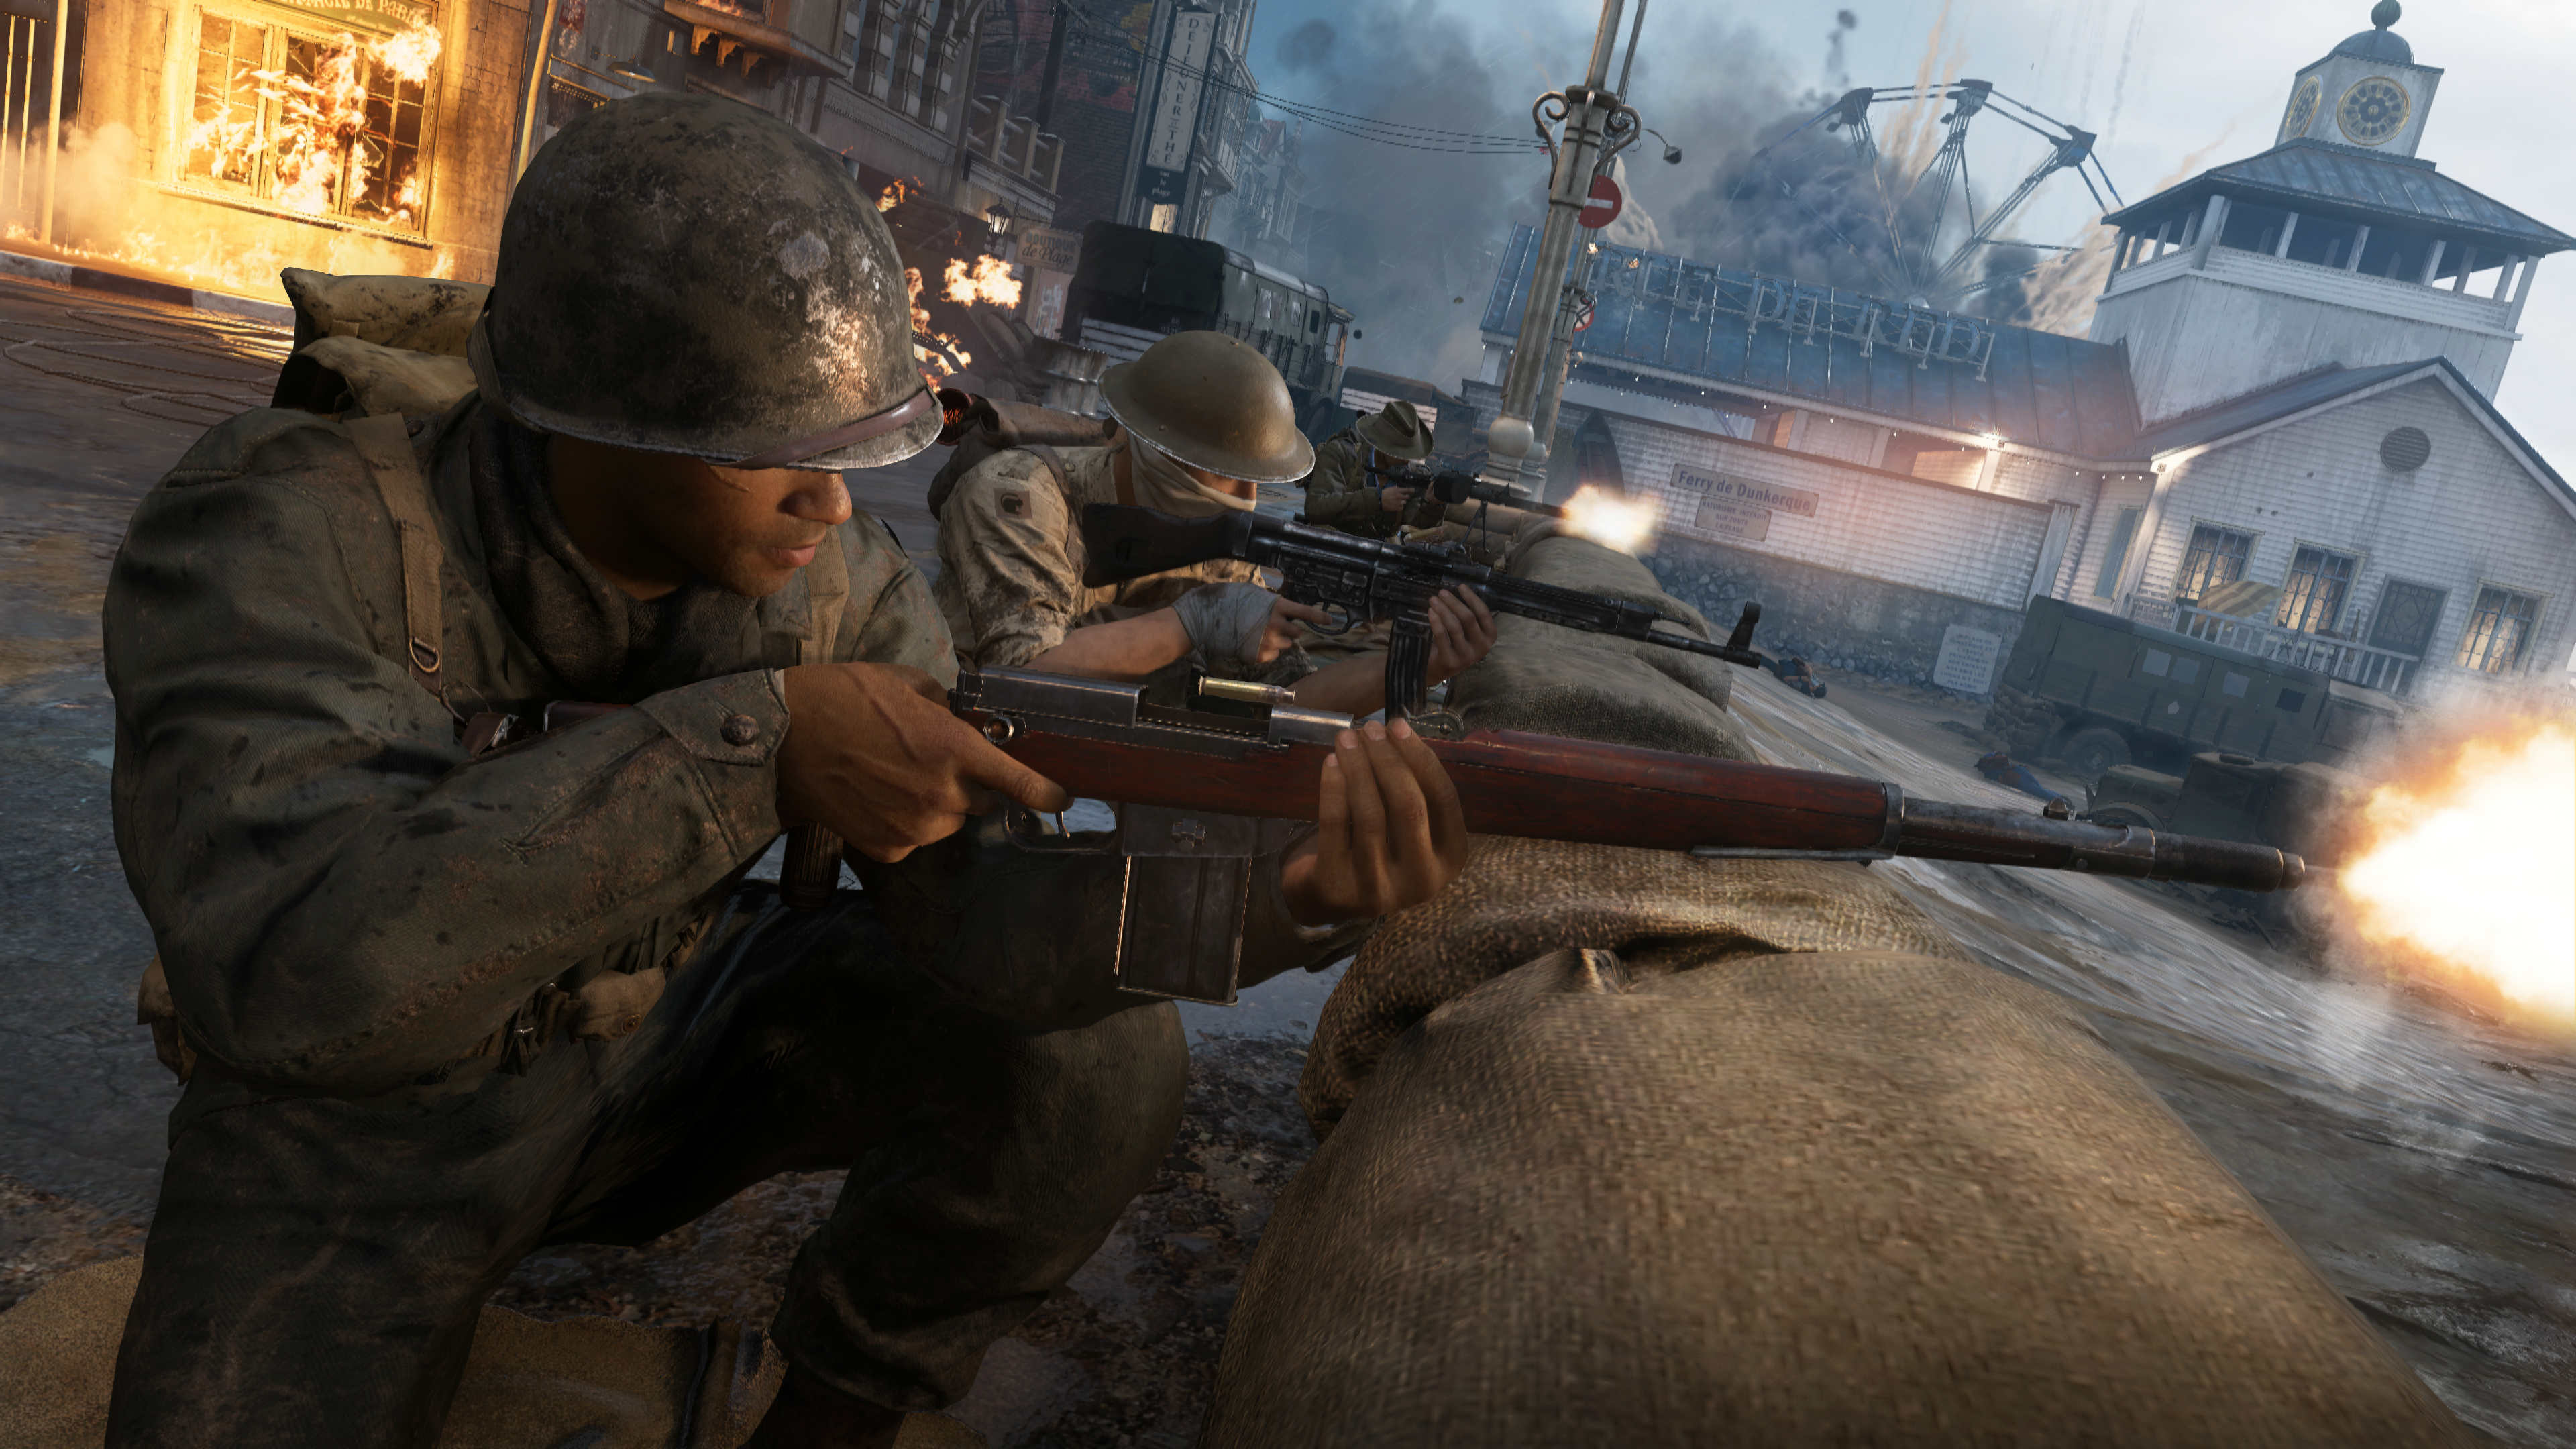 Call of Duty: WWII: The War Machine review